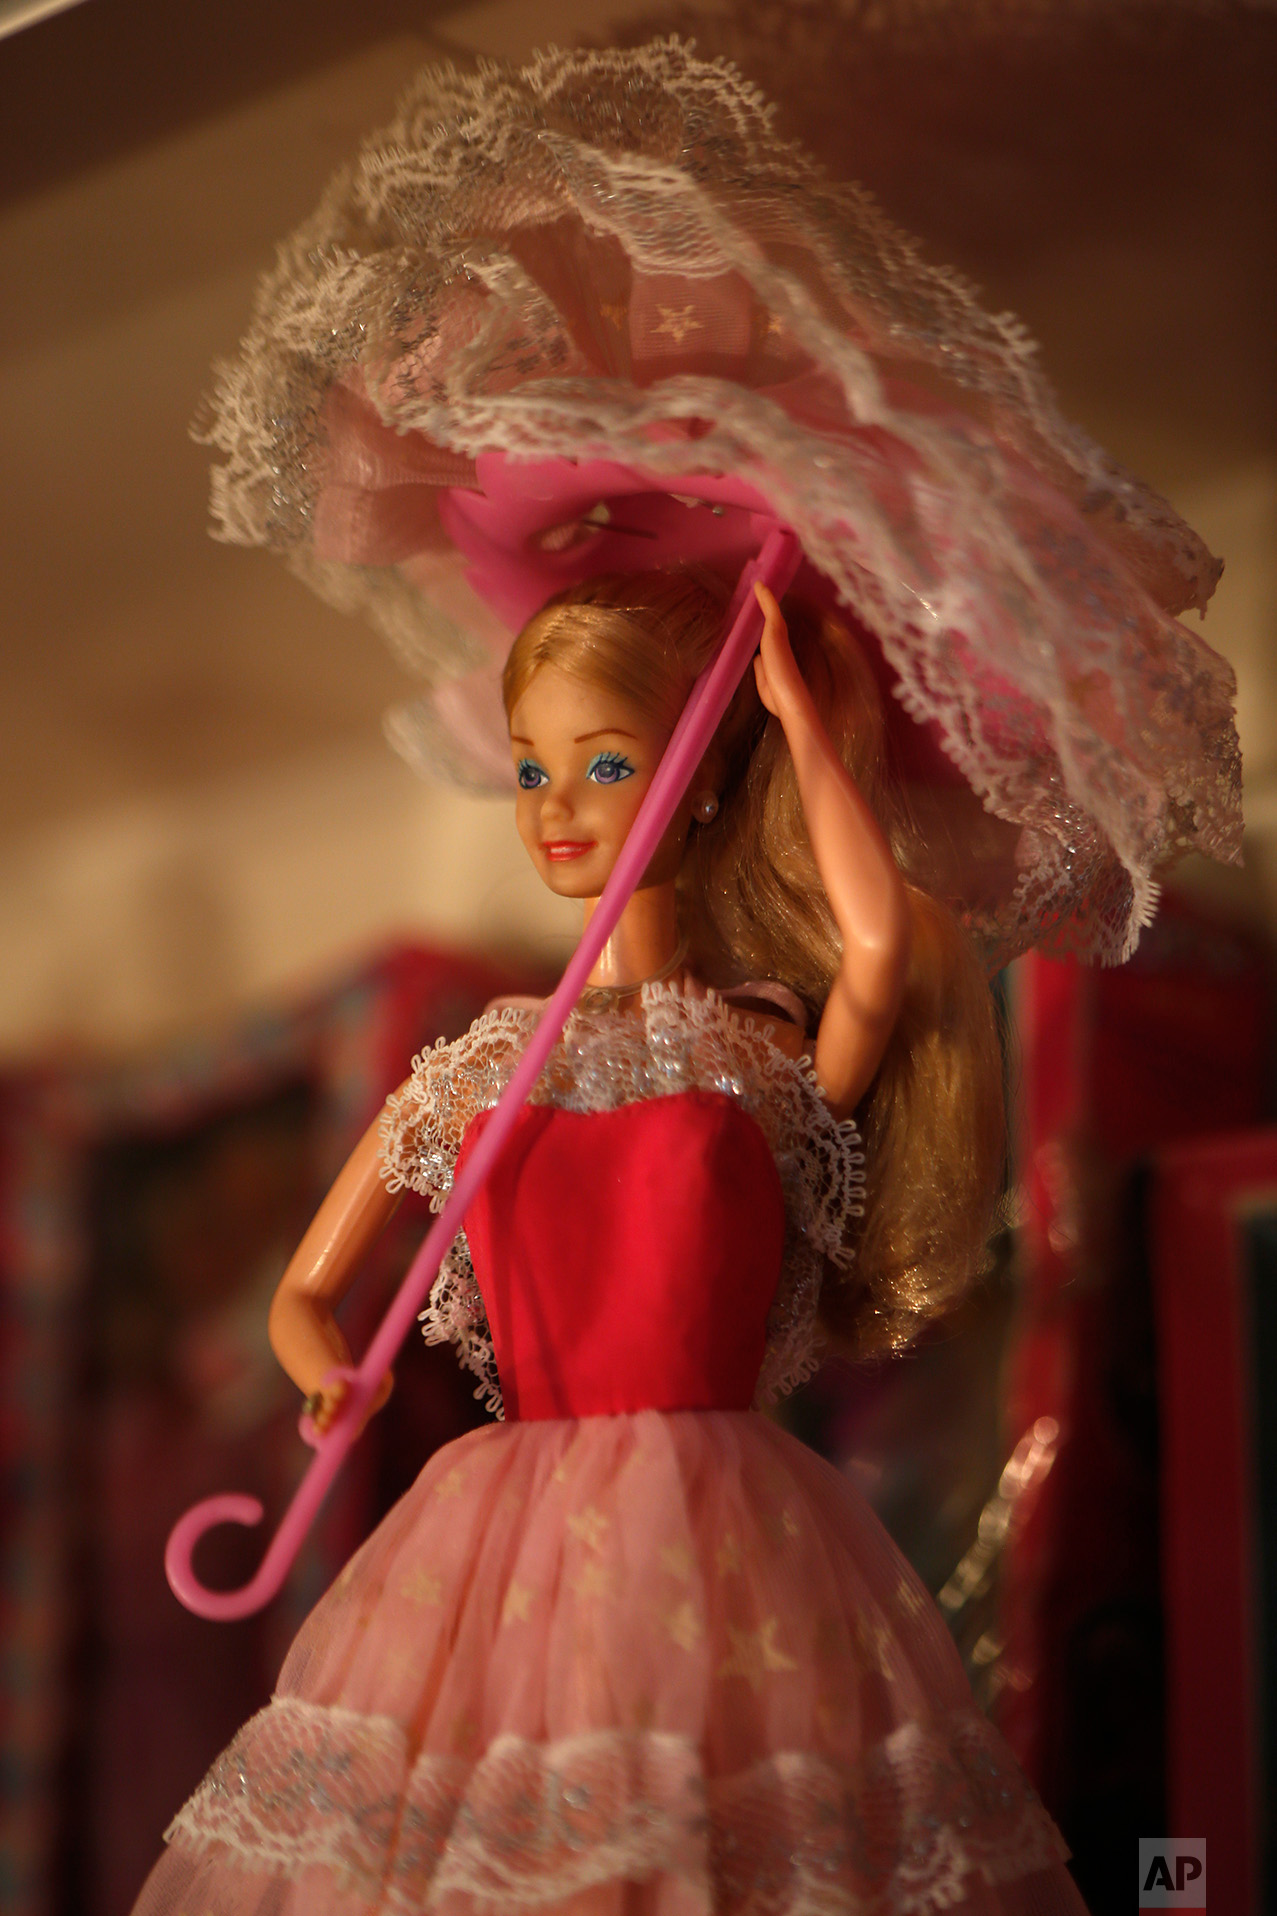 """In this Jan. 6, 2017 photo, a 1986 Barbie """"STAR Destello Magico"""" model made in Mexico, is displayed prior to the opening of a Barbie doll exhibit at the Mexico Antique Toy Museum in Mexico City. Among the millions of items displayed in this museum, all sorts of Mexican wrestling paraphernalia and old traditional Mexican toys remind Mexicans of their rich cultural heritage as well as a blunt reminder that before the North American Free trade agreement was signed in the 1990's, Mexico had a robust, healthy and creative national toy industry that is now practically defunct.(AP Photo/Dario Lopez-Mills)"""